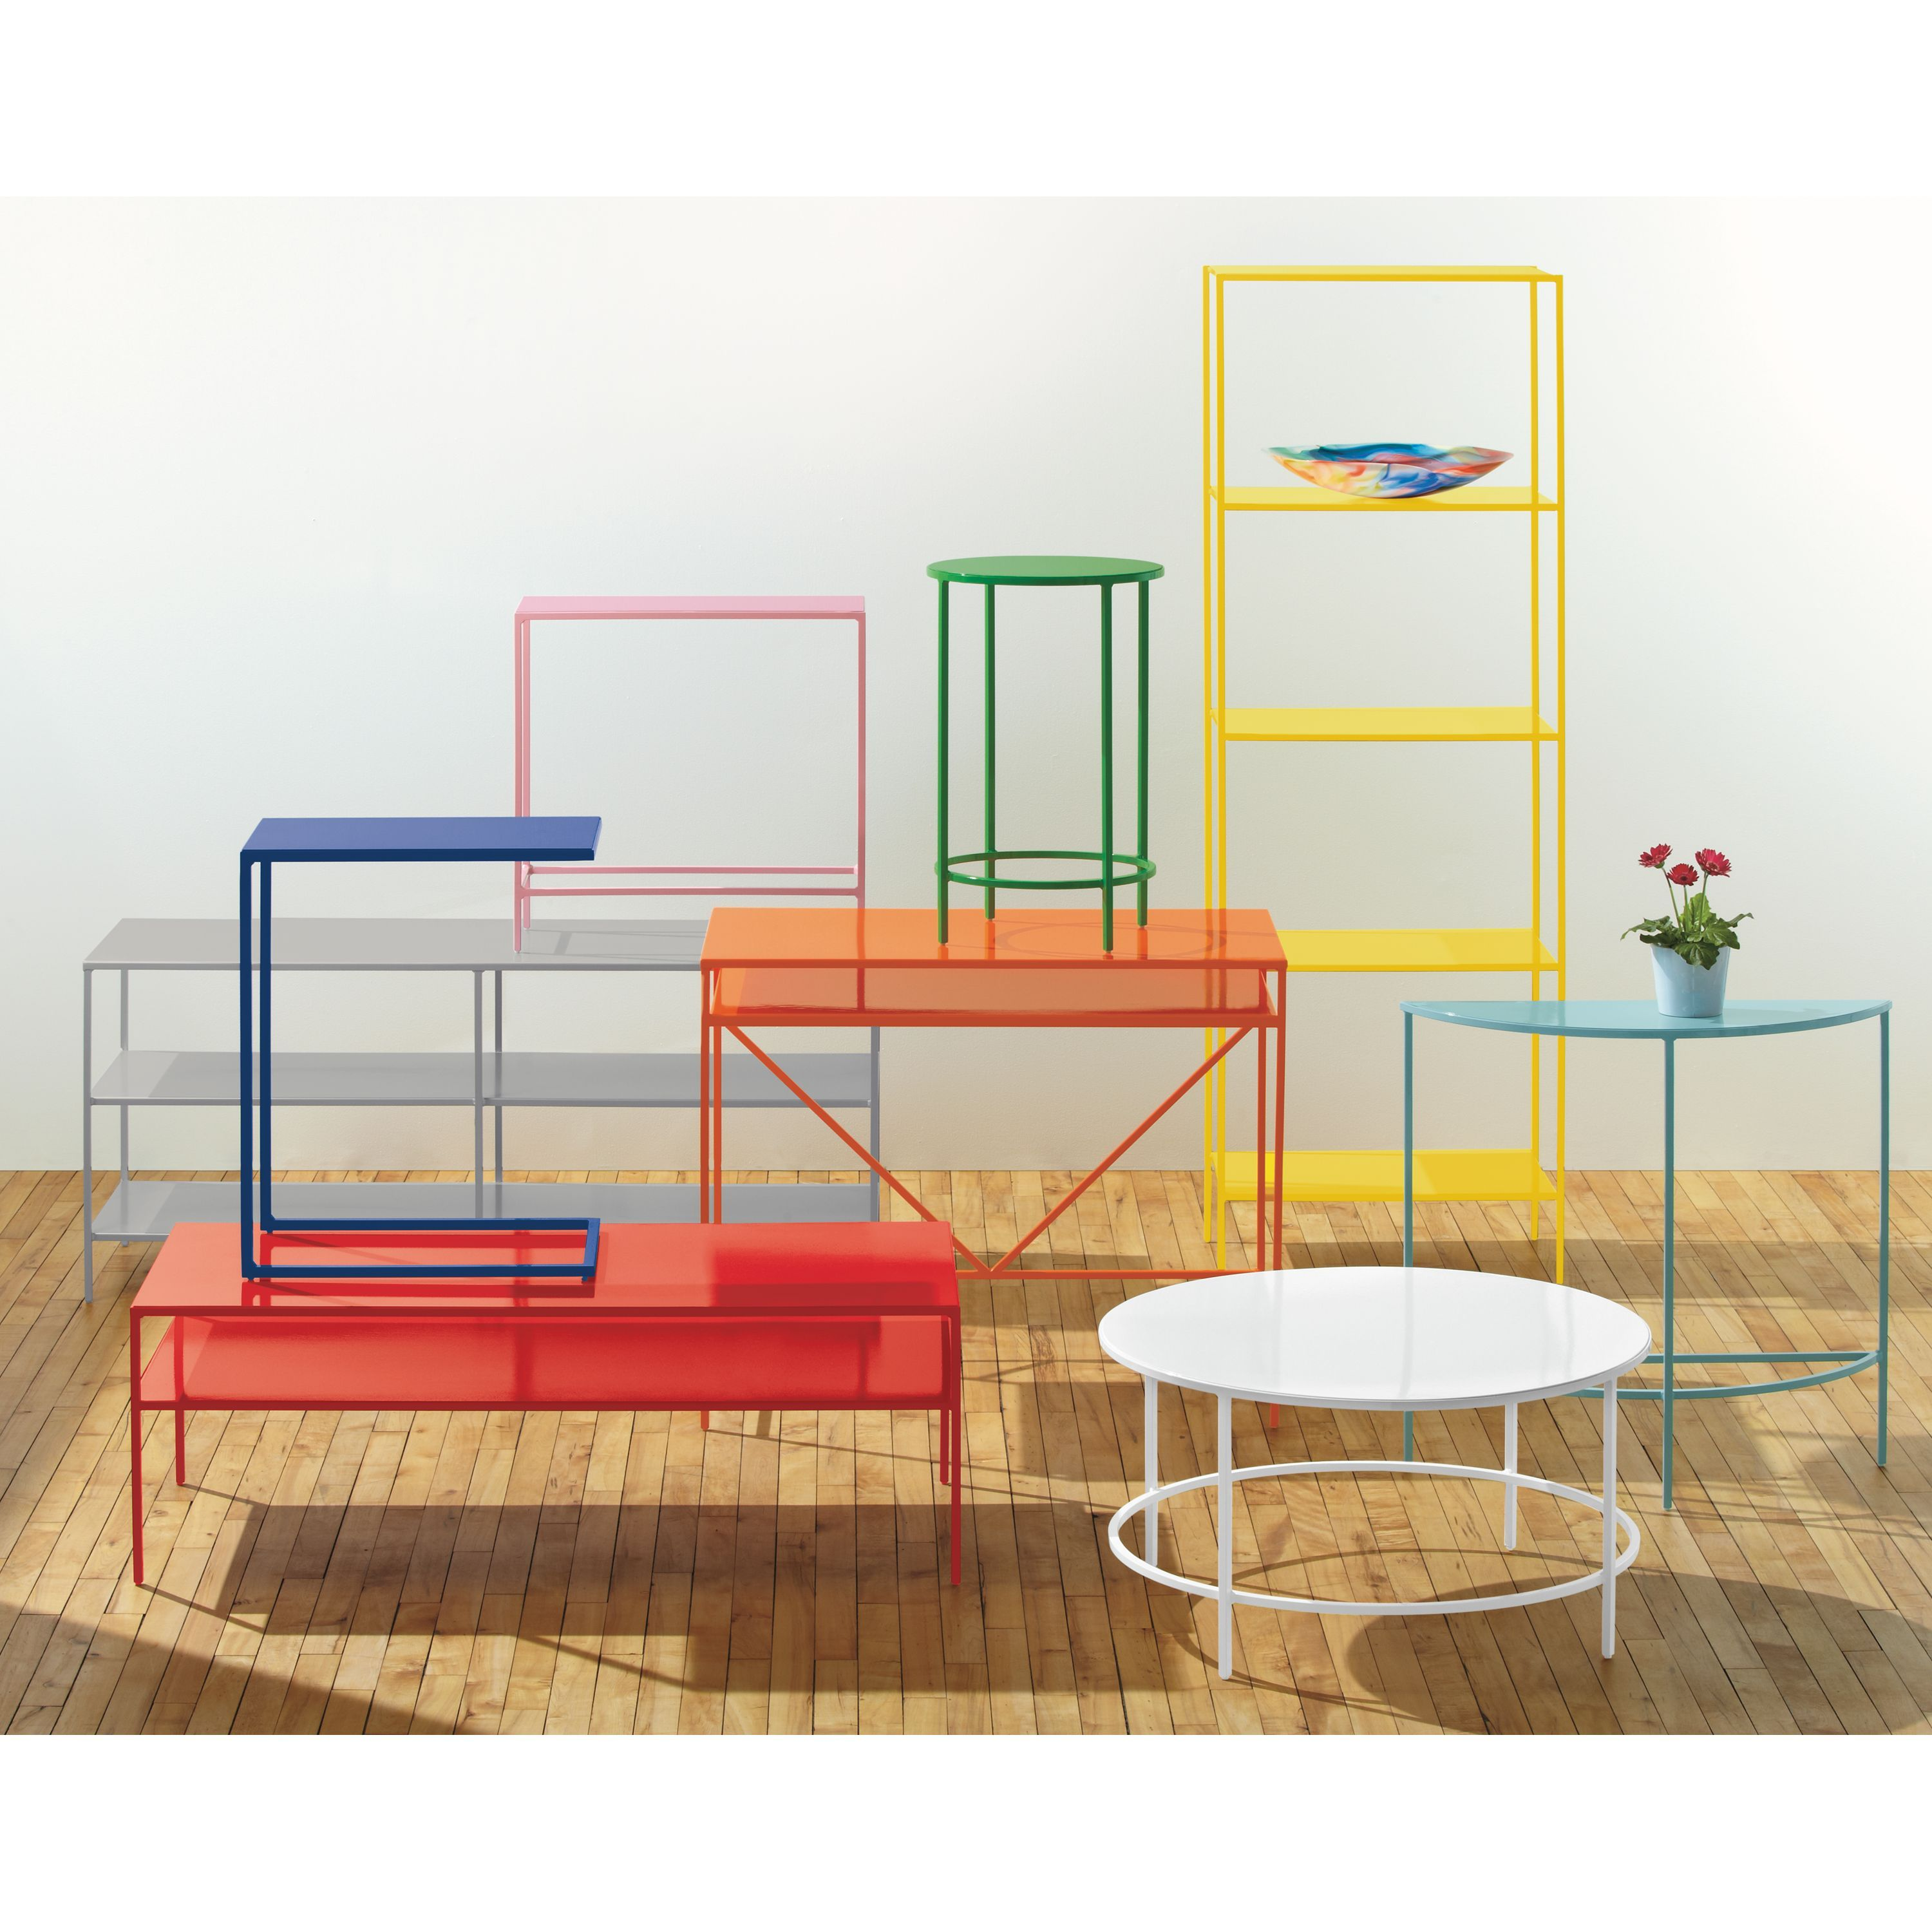 Slim End Tables In Colors Modern End Tables Modern Living Room Furniture Room Board Slim Console Table Slim Bookcase Modern Furniture Living Room Room and board side table